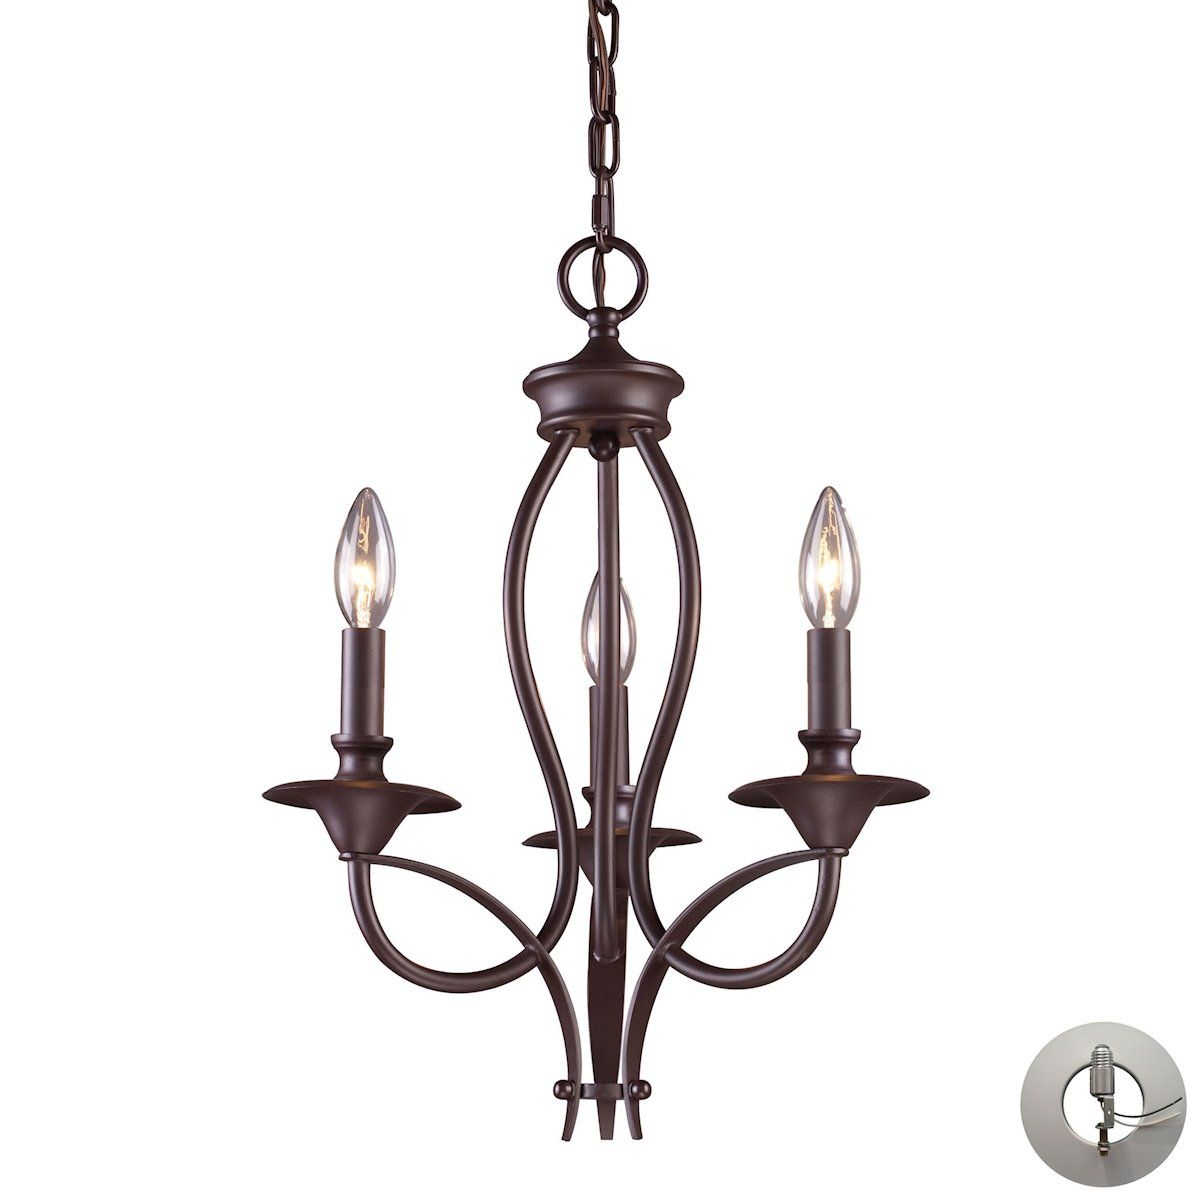 Medford light chandelier in oiled bronze includes recessed